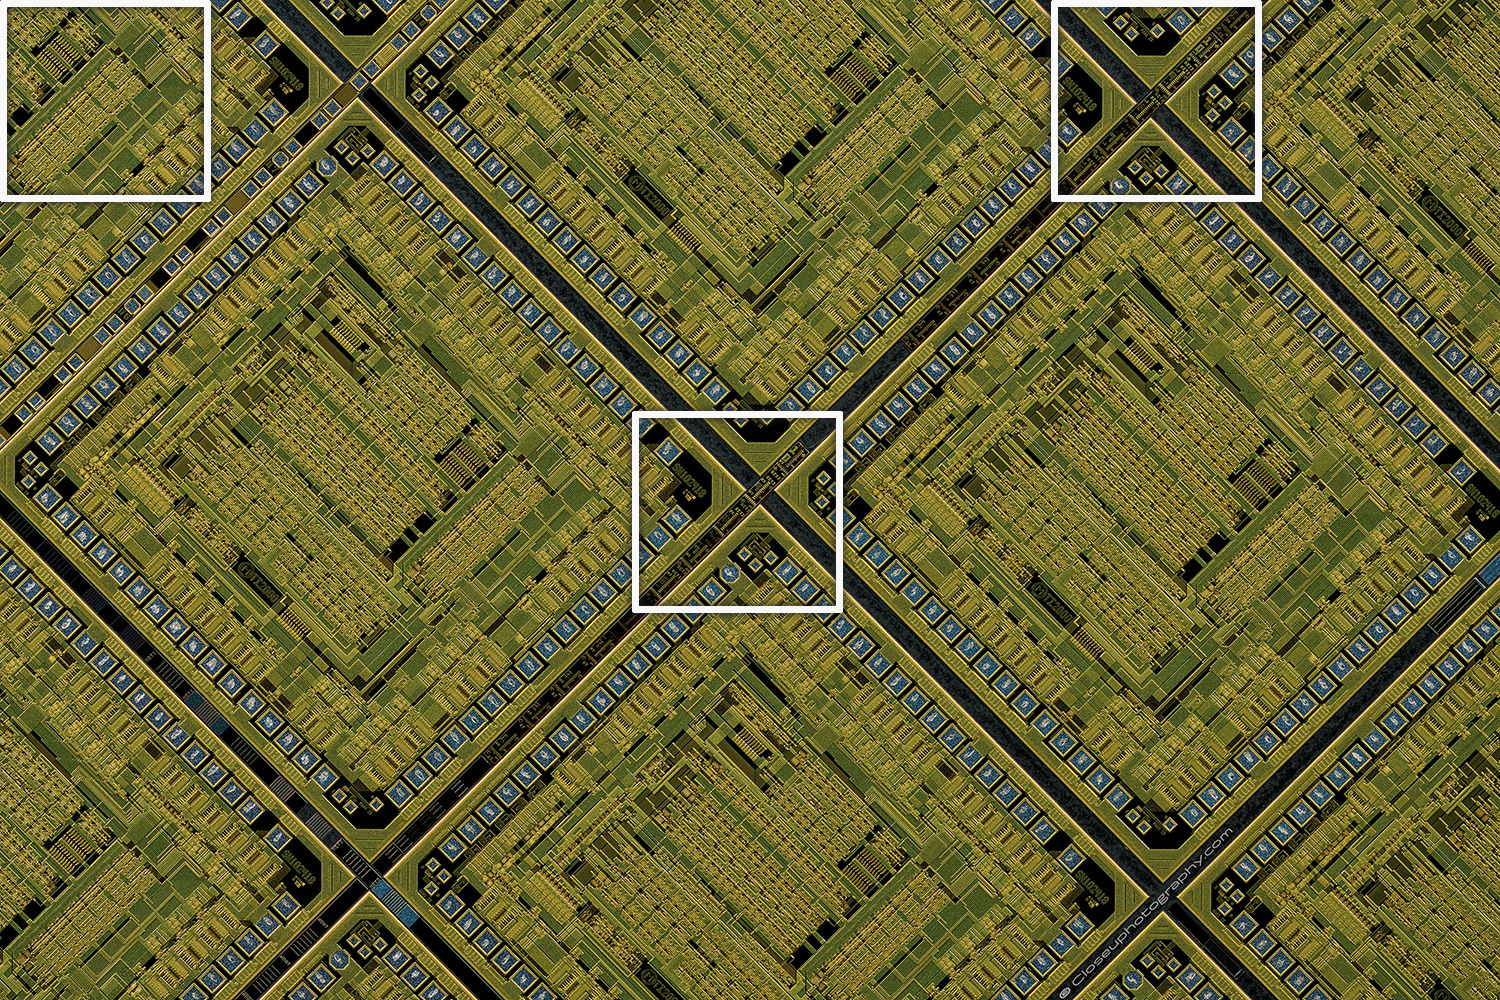 Crop-areas-outlined-Componon-35mm-f2.8-Line-Scan-Lens-two-views-at-3.2x-www-Closeuphotography-com.jpg